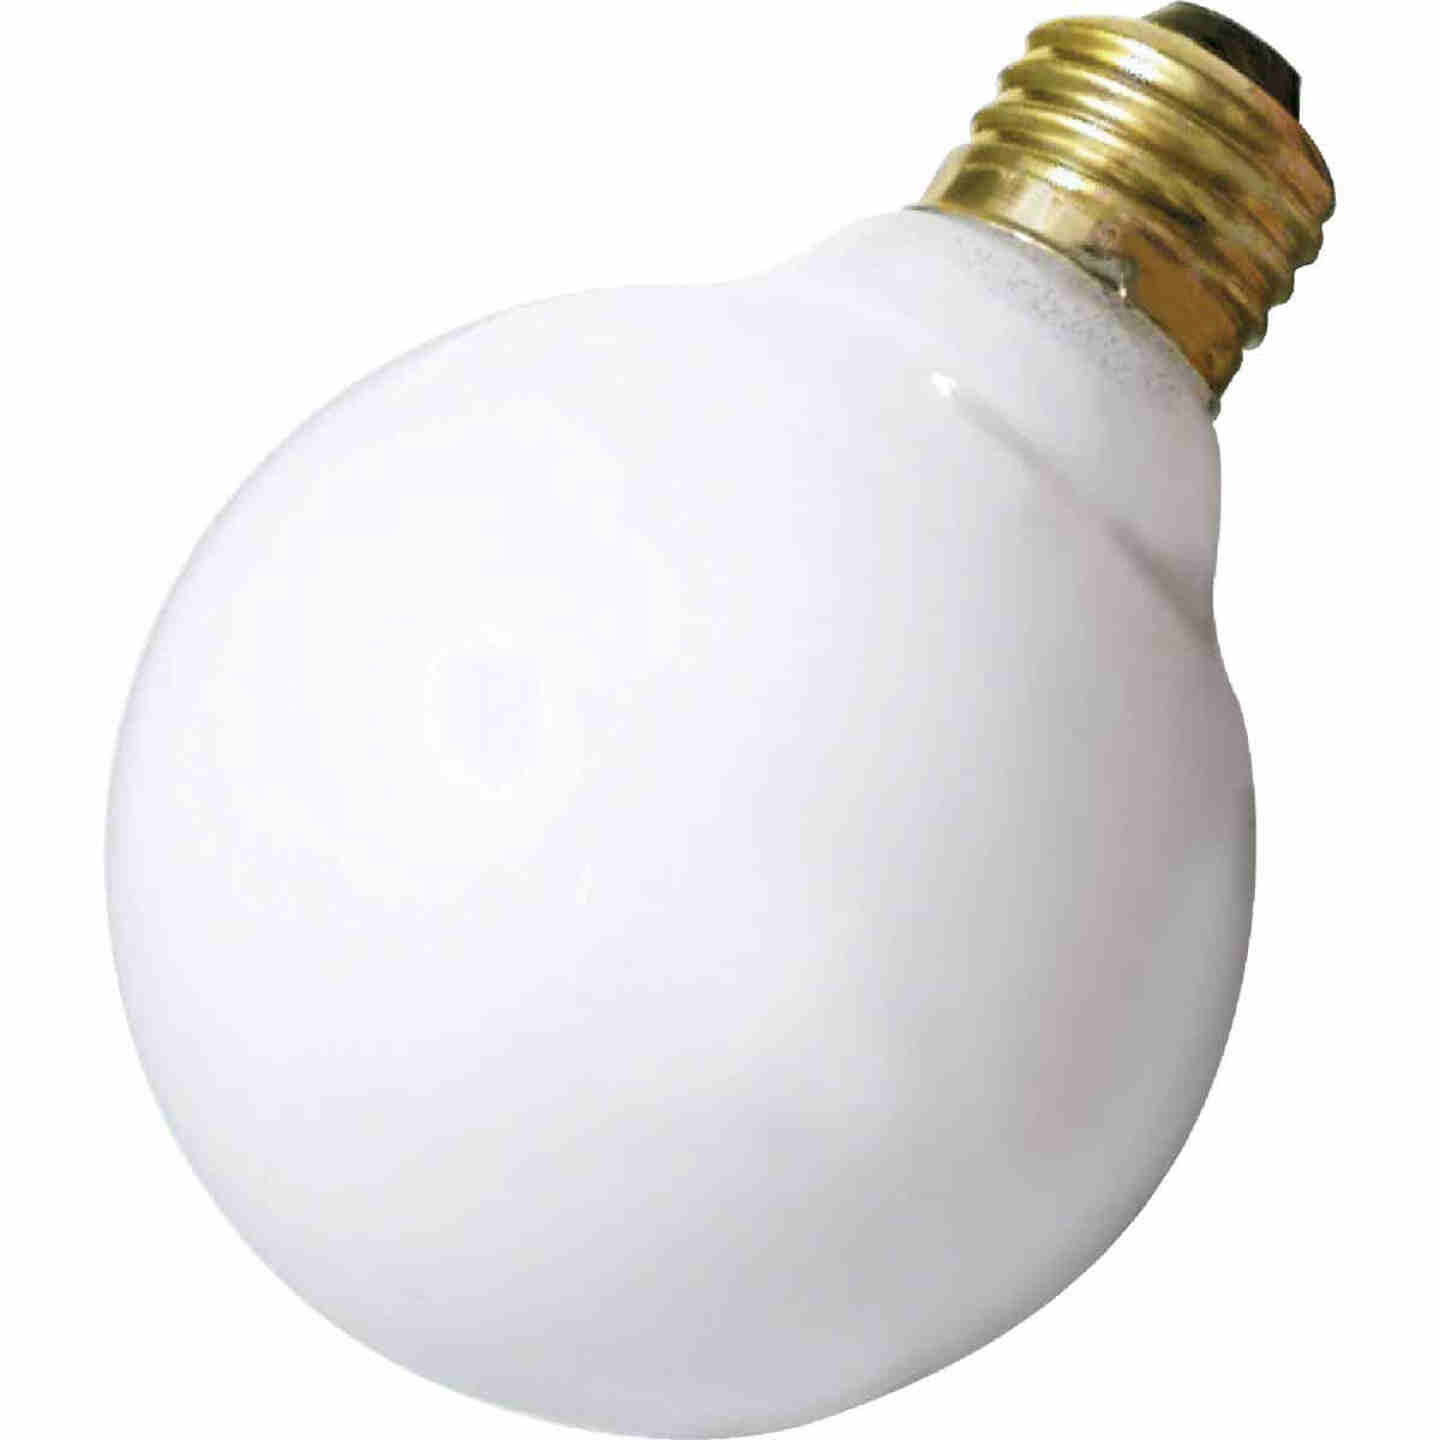 Satco 25W Frosted Soft White Medium Base G25 Incandescent Globe Light Bulb  Image 1